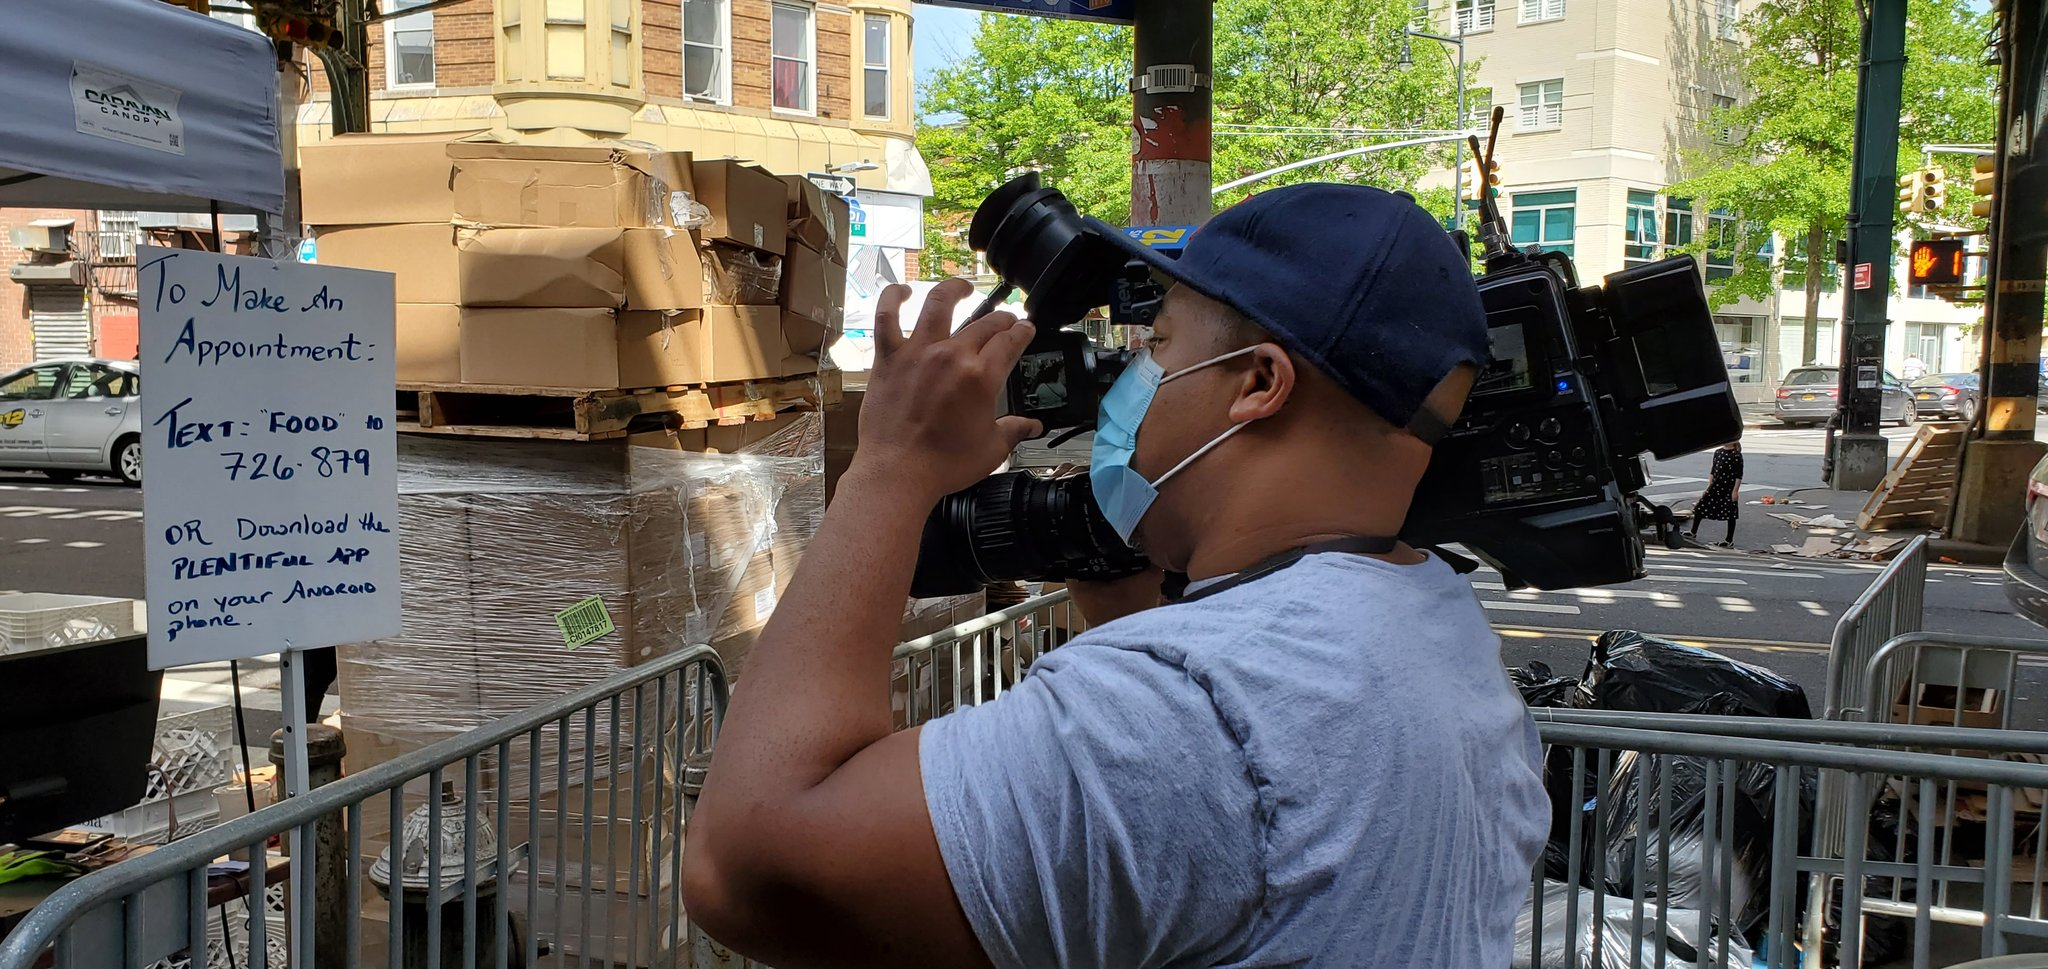 Reporter Christian L Braxton of News12 Brooklyn focusing his camera at Masbia of Boro Park during covid-19 pandemic